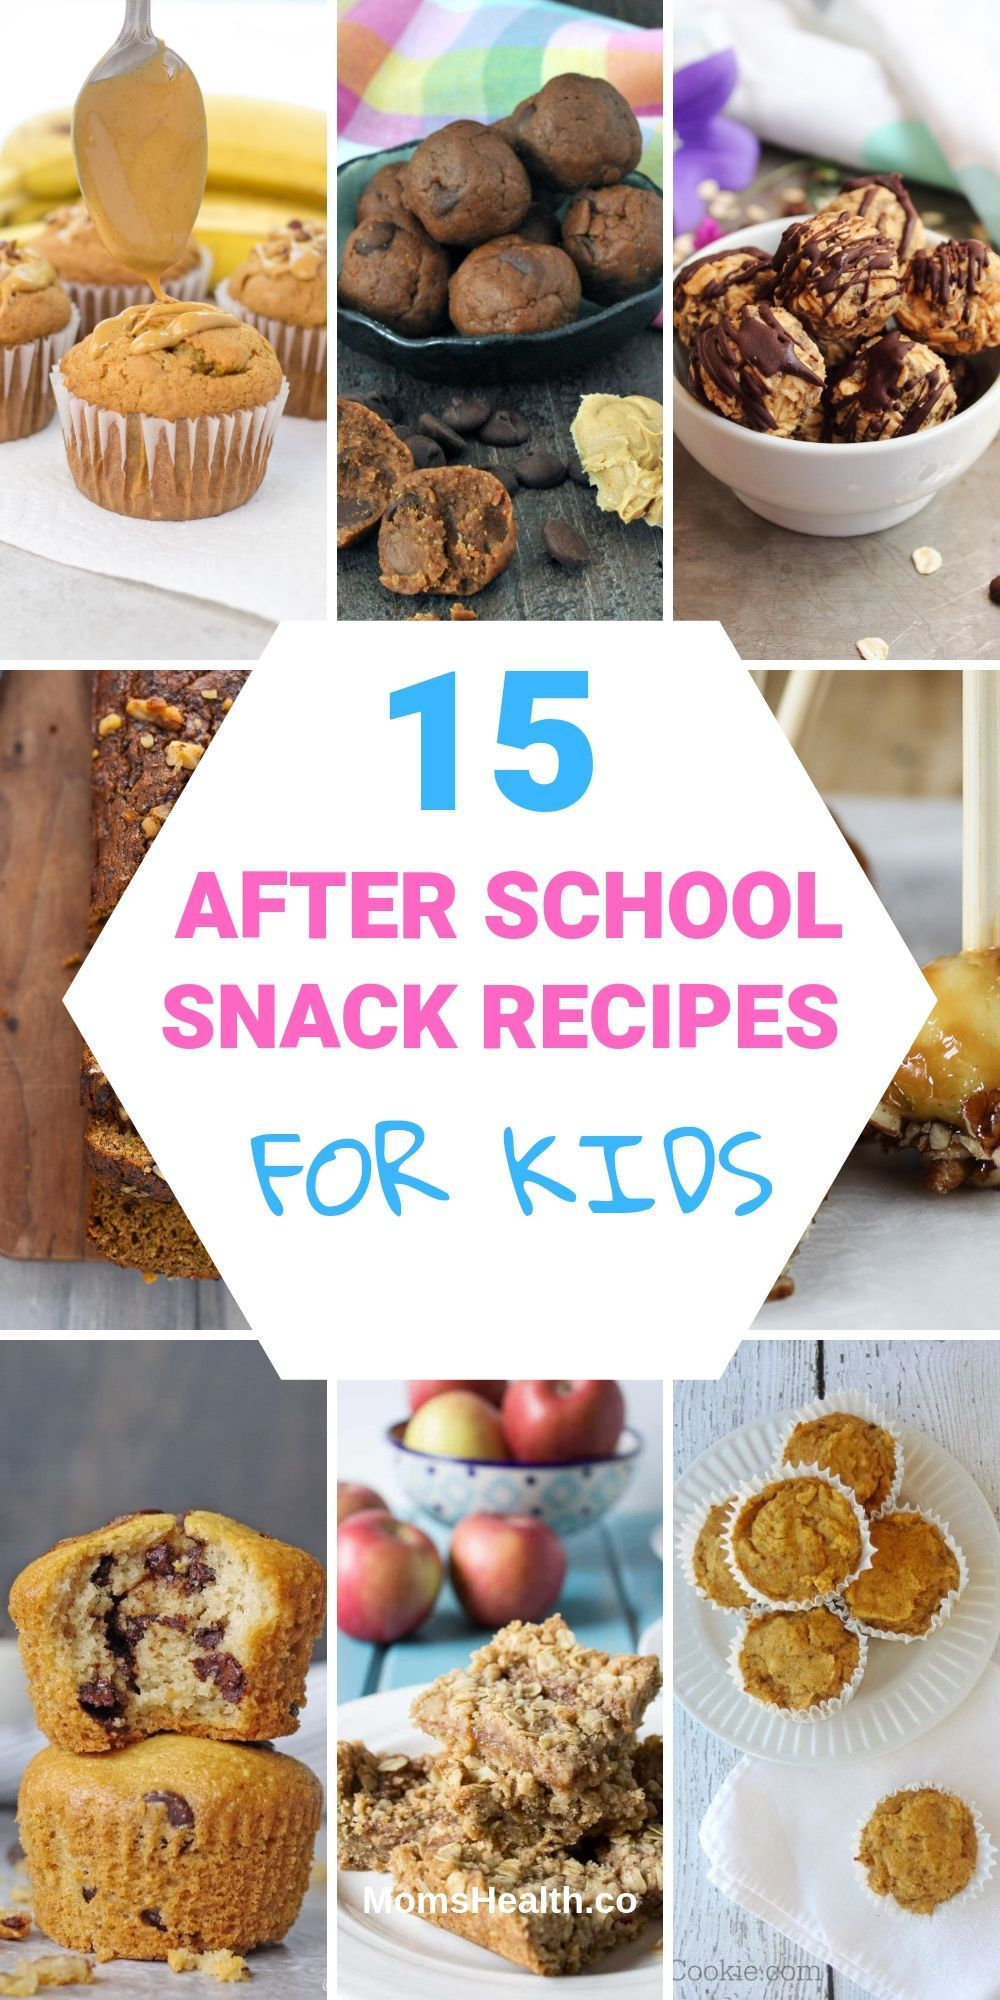 15 Easy After School Snack Recipes For Kids Healthy Make Ahead Ideas School Snack Recipe After School Snacks Kids Snack Food